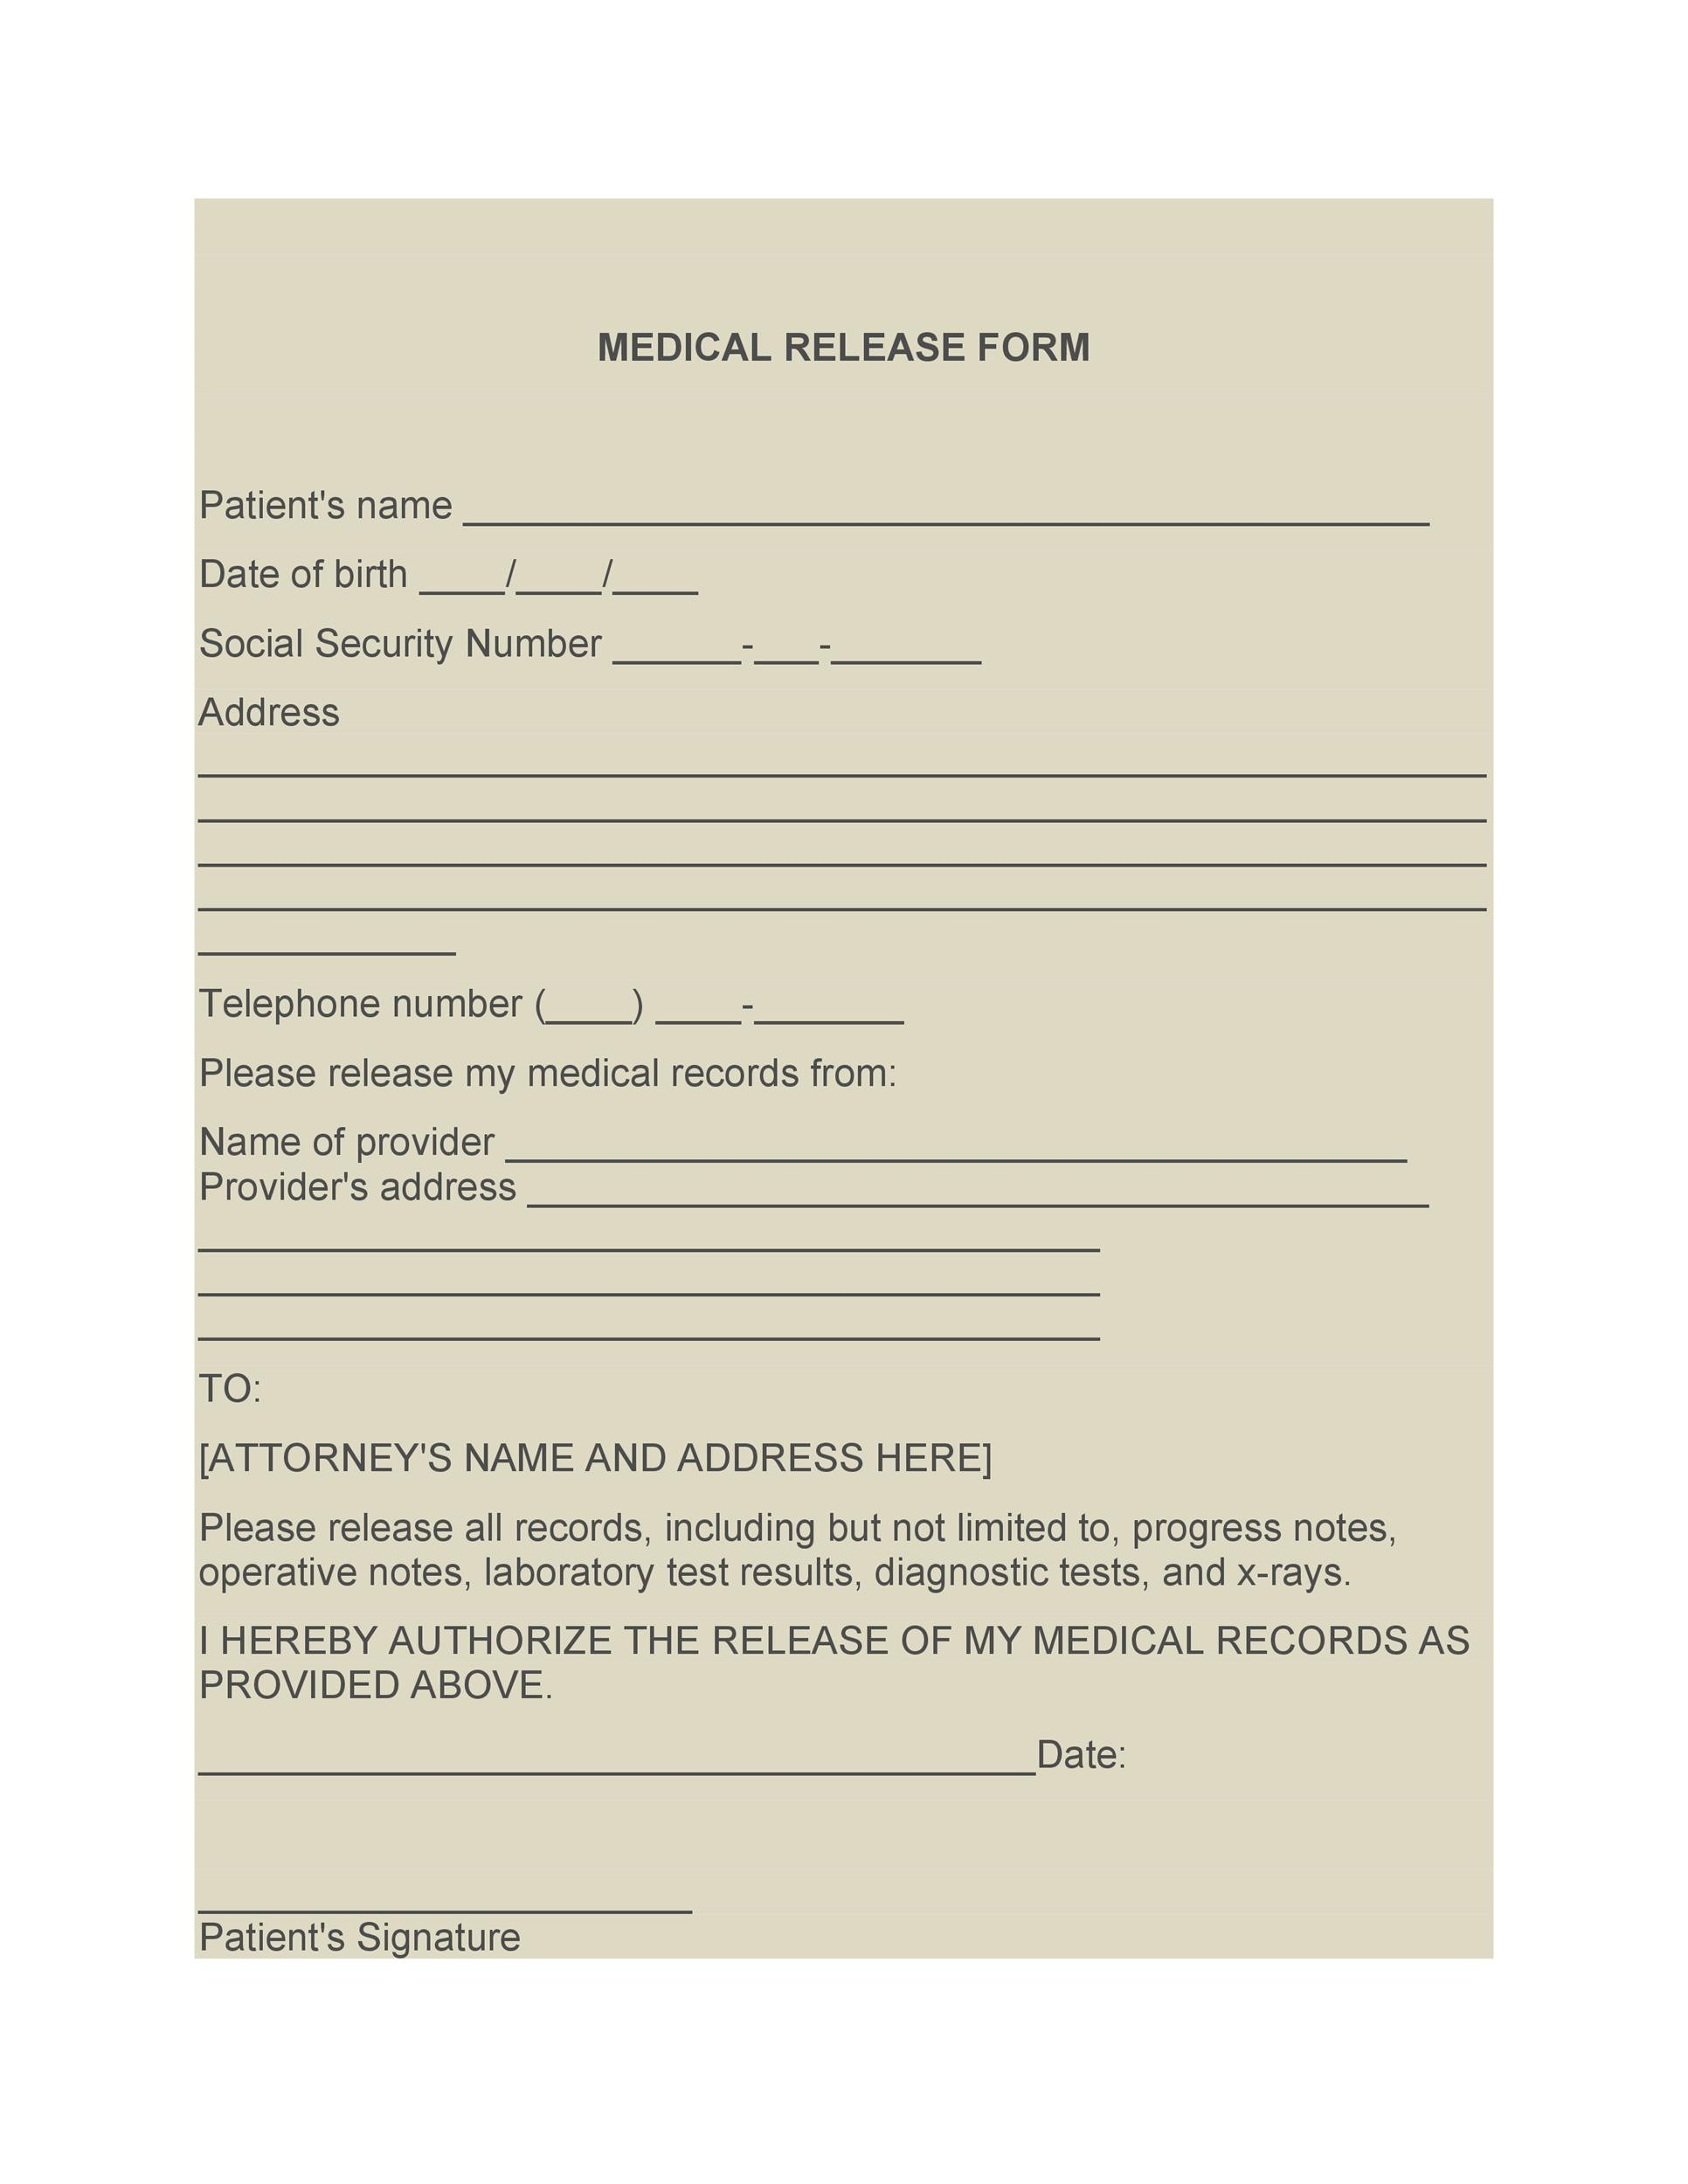 30+ Medical Release Form Templates - Template Lab - medical release of information form template